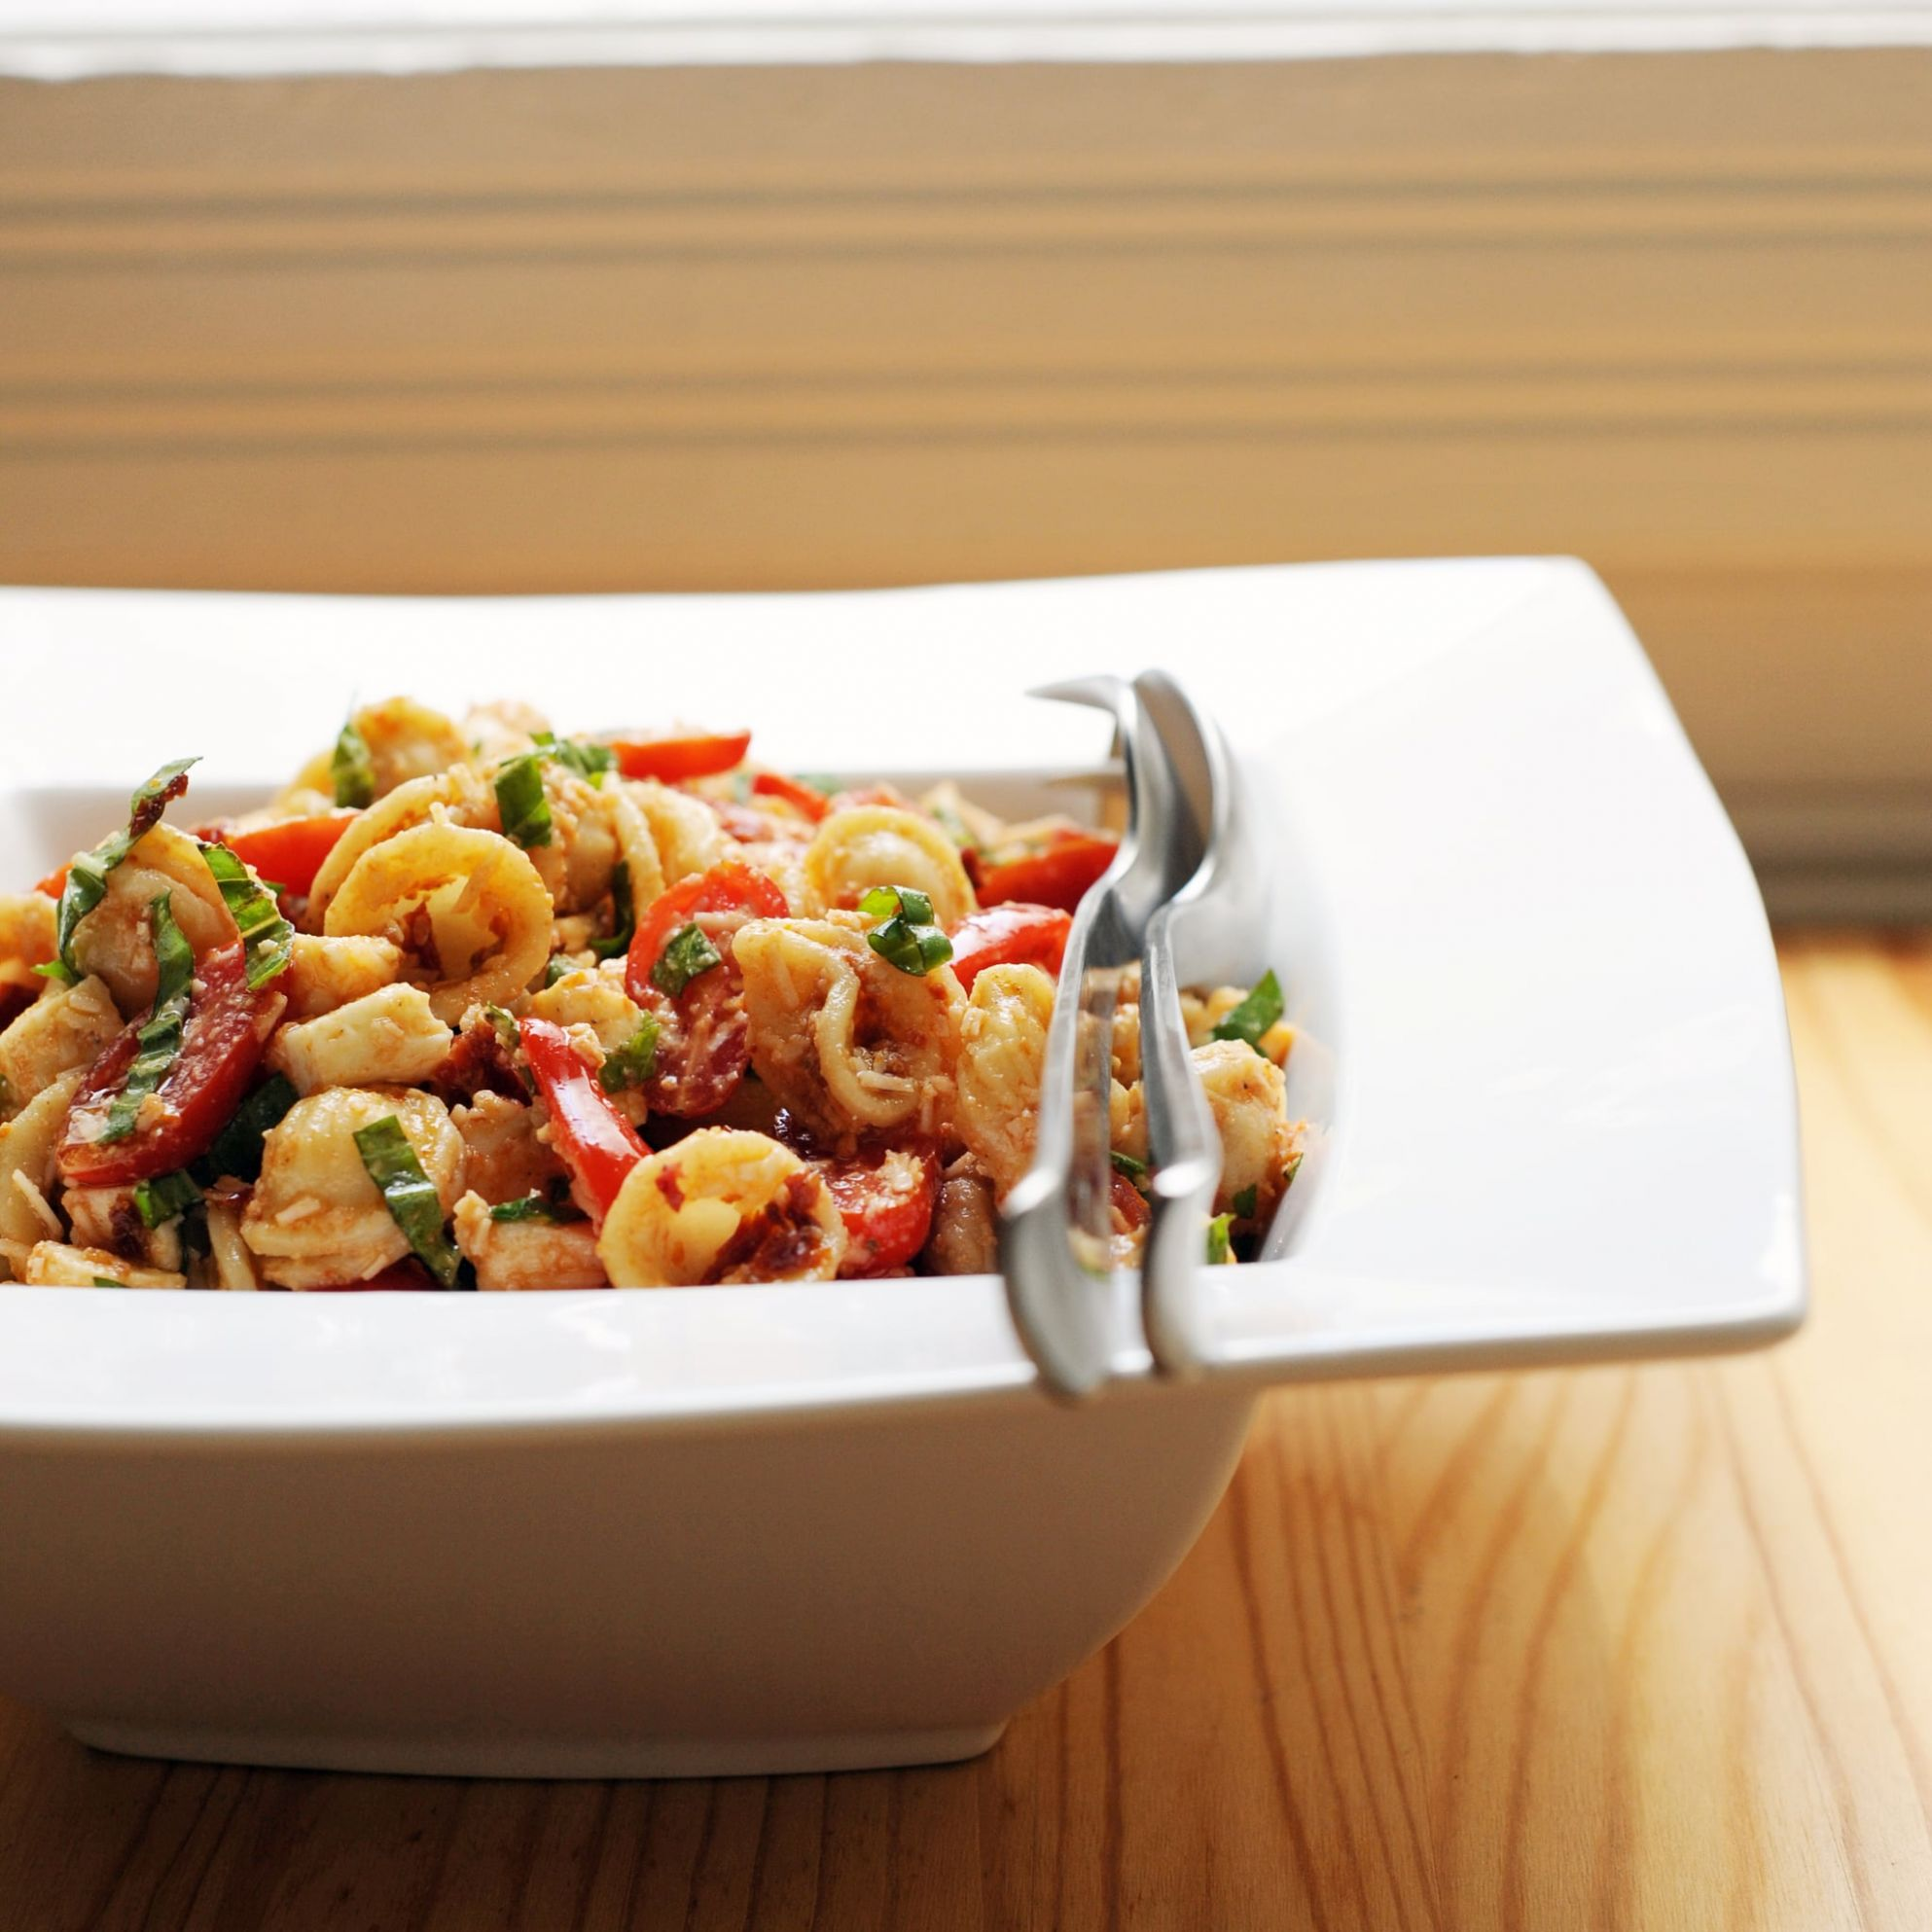 Feed a Crowd With Sun-Dried-Tomato Pasta Salad - Summer Recipes To Feed A Crowd